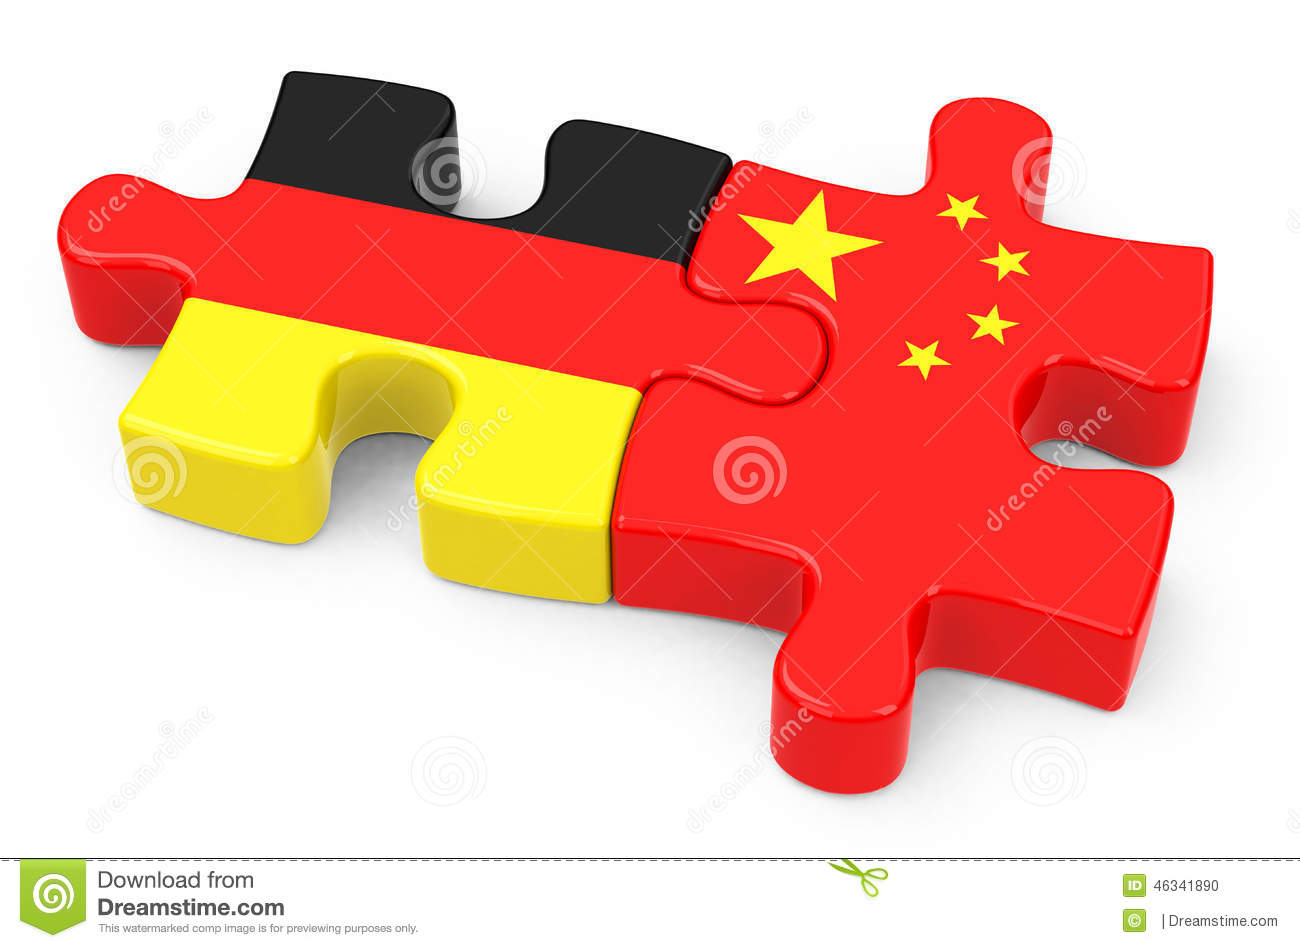 Joint Ventures in China